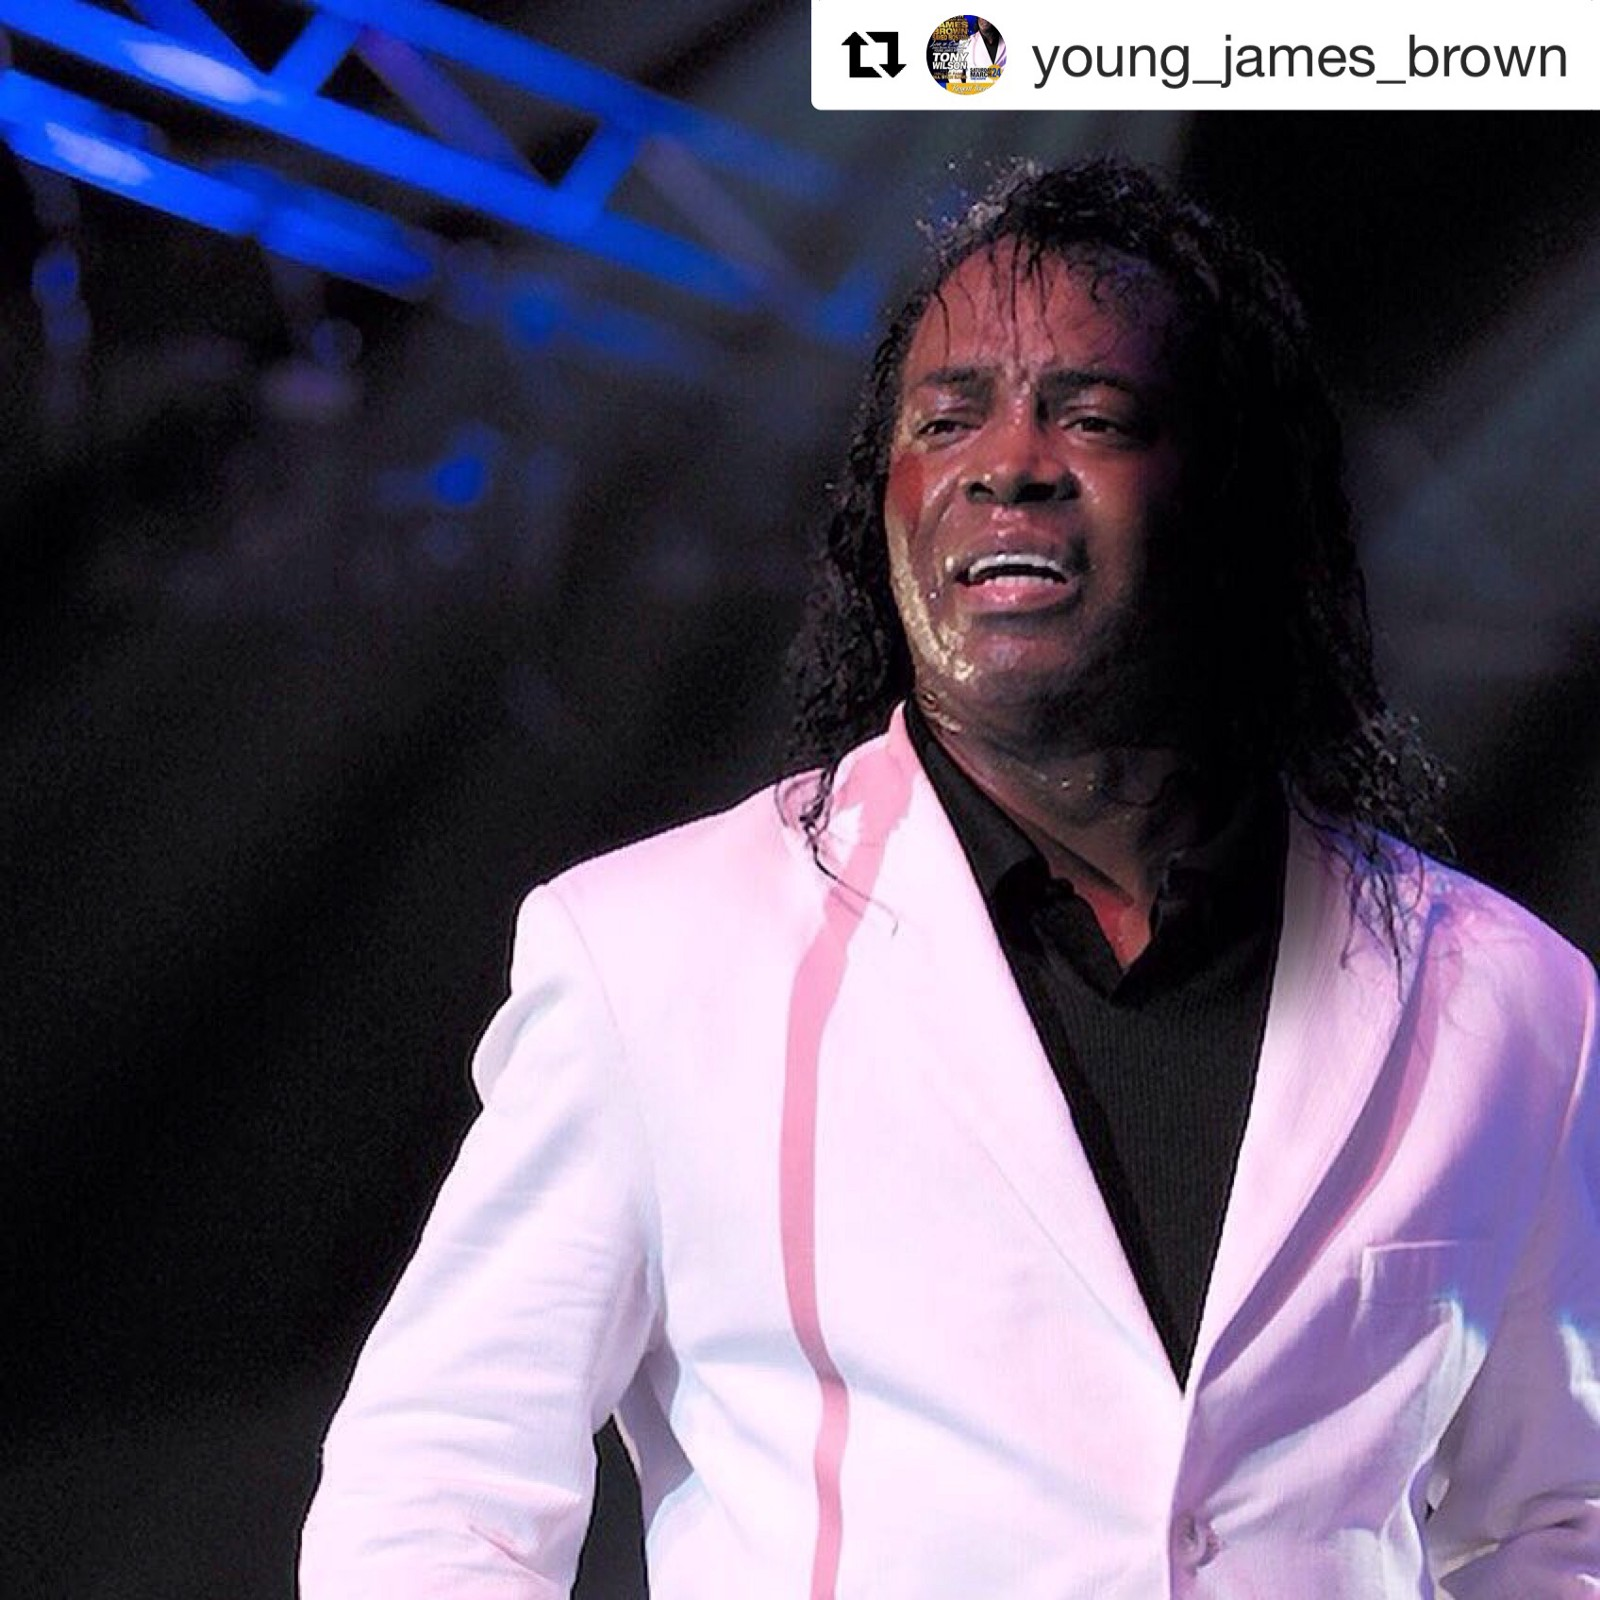 James brown young pictures